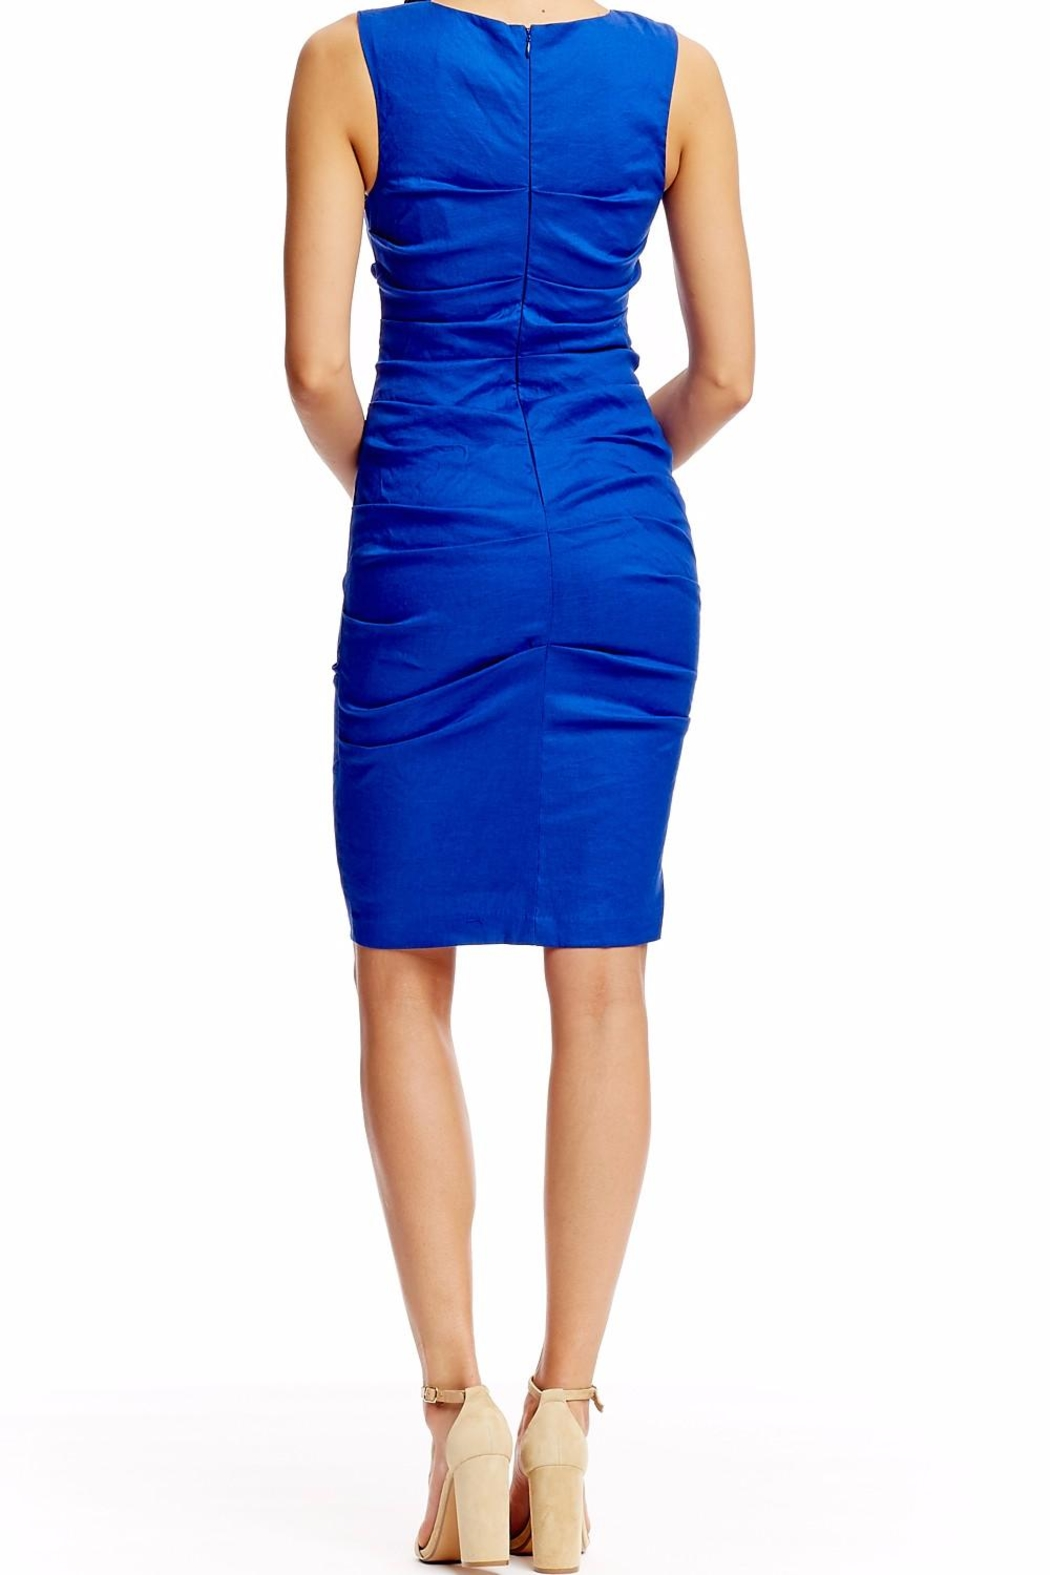 Nicole Miller Lauren Stretch Dress - Side Cropped Image